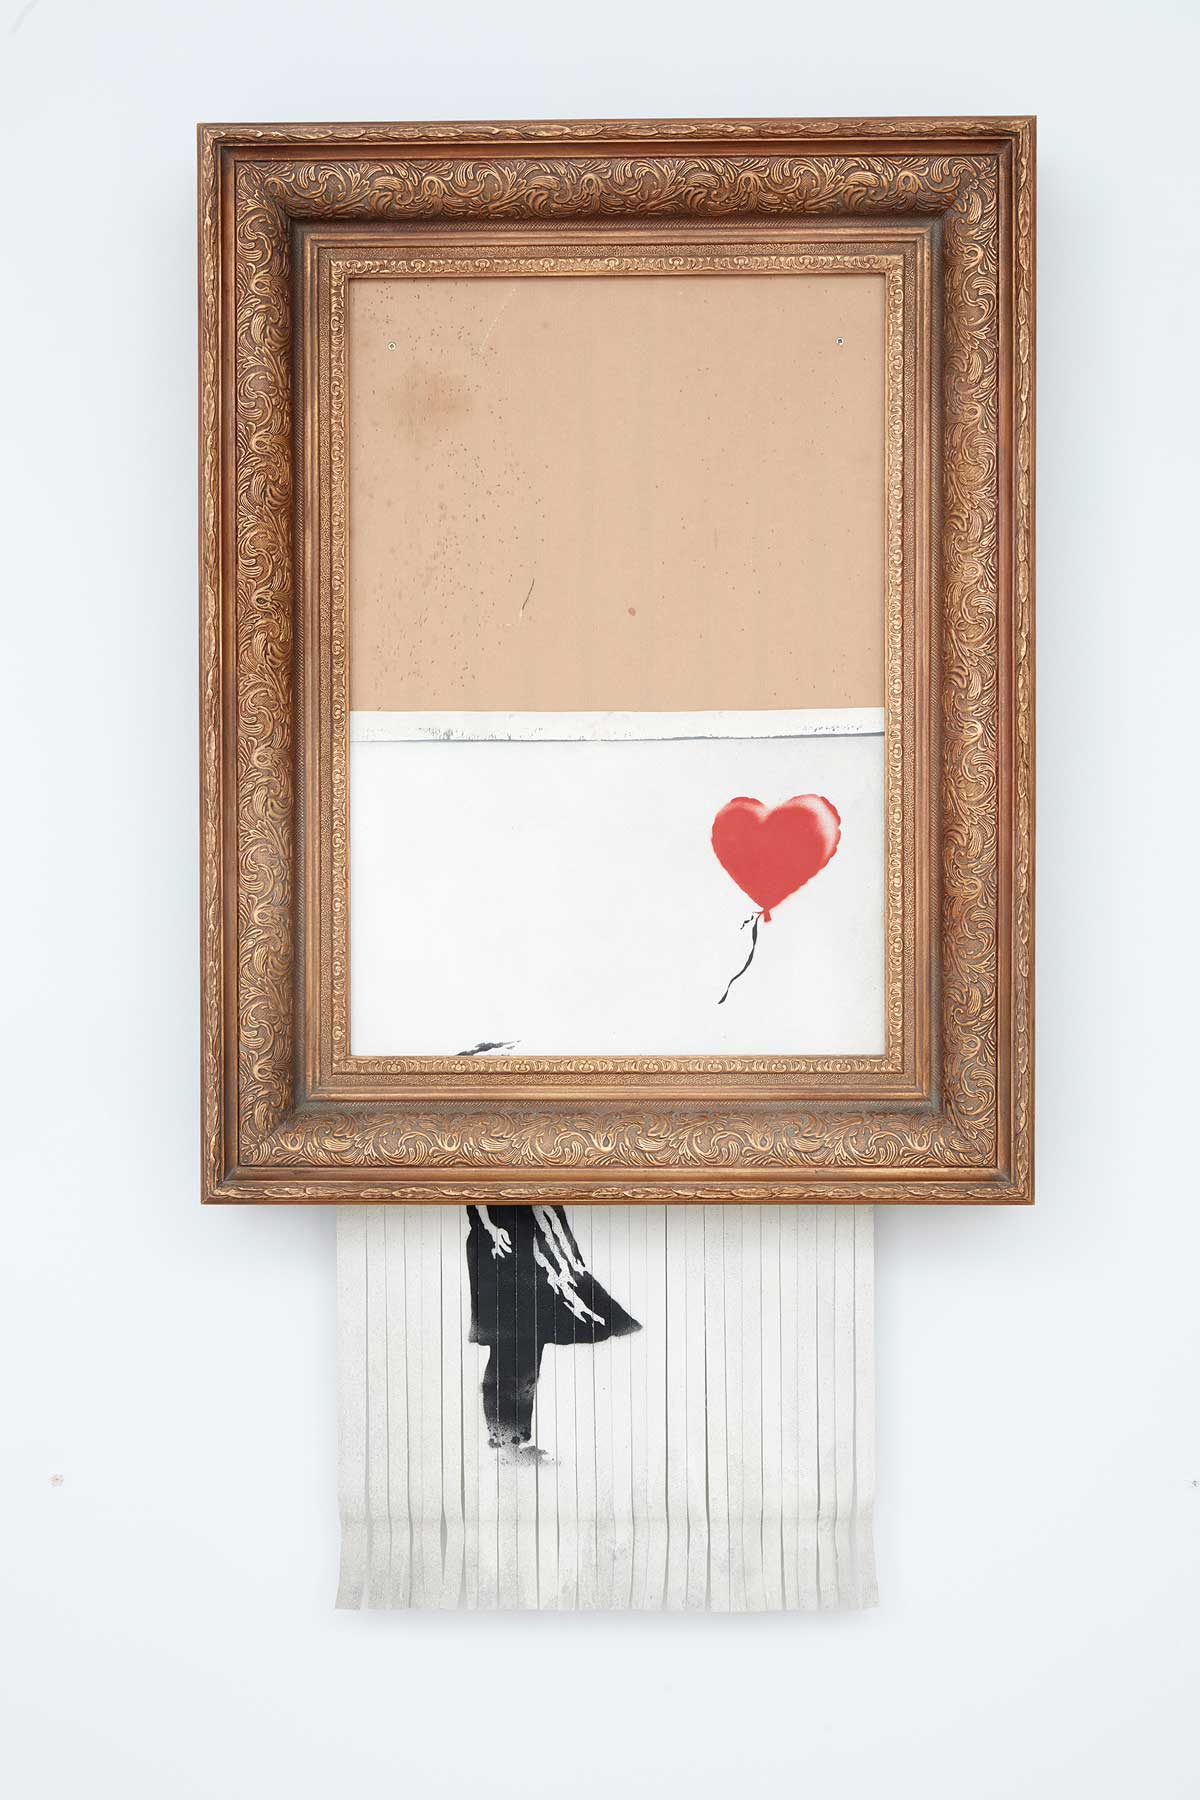 https://www.artsandcollections.com/wp-content/uploads/2018/10/Banksy-Love-is-in-the-Bin.jpg